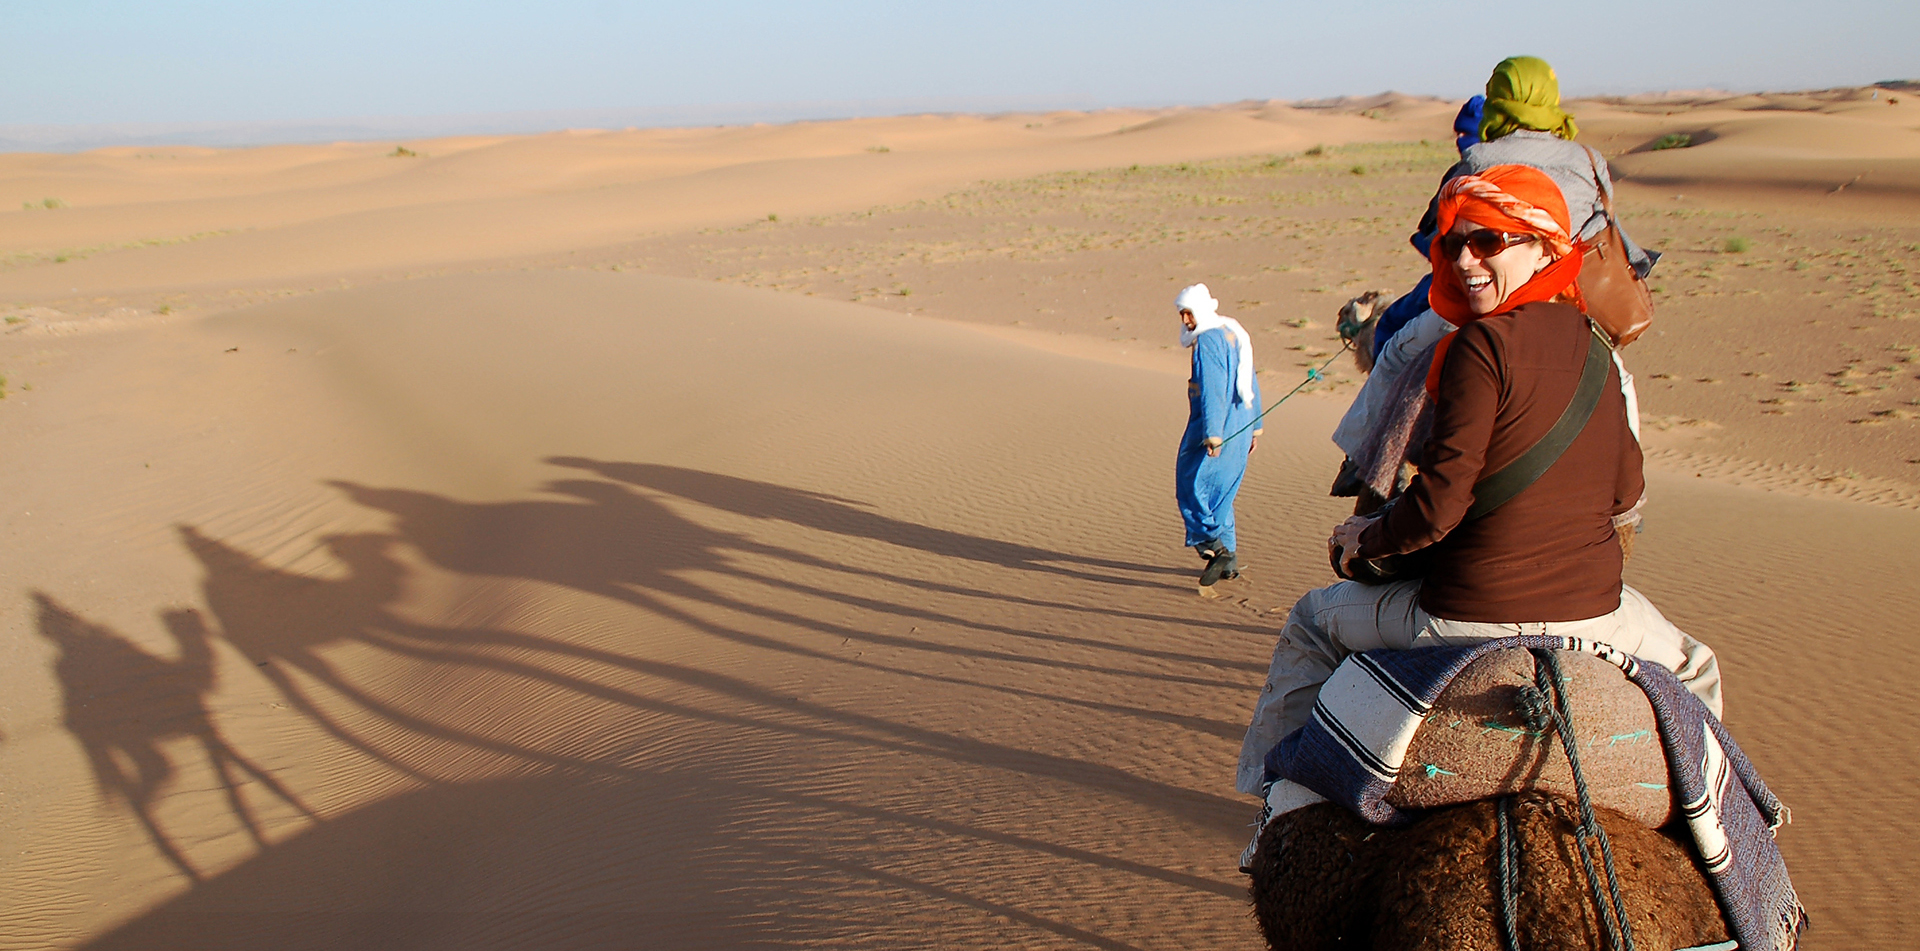 Africa Morocco Sahara Desert woman laughing riding camel caravan tribal Blue Man sand dunes - luxury vacation destinations